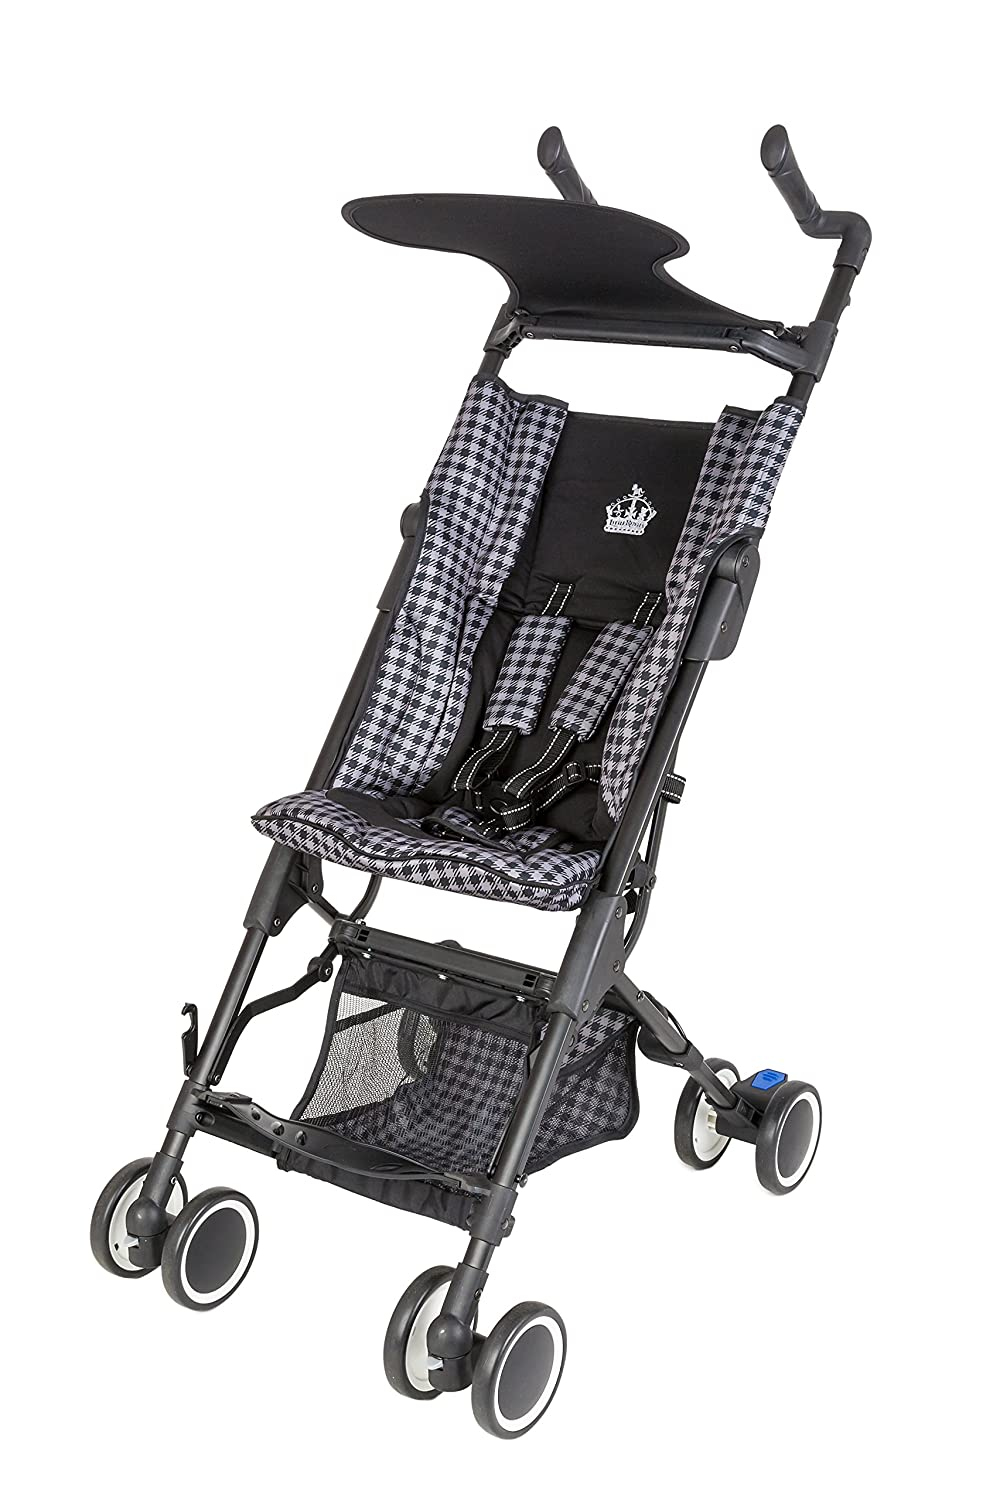 Ultra Compact Folding Stroller Strollers 2017